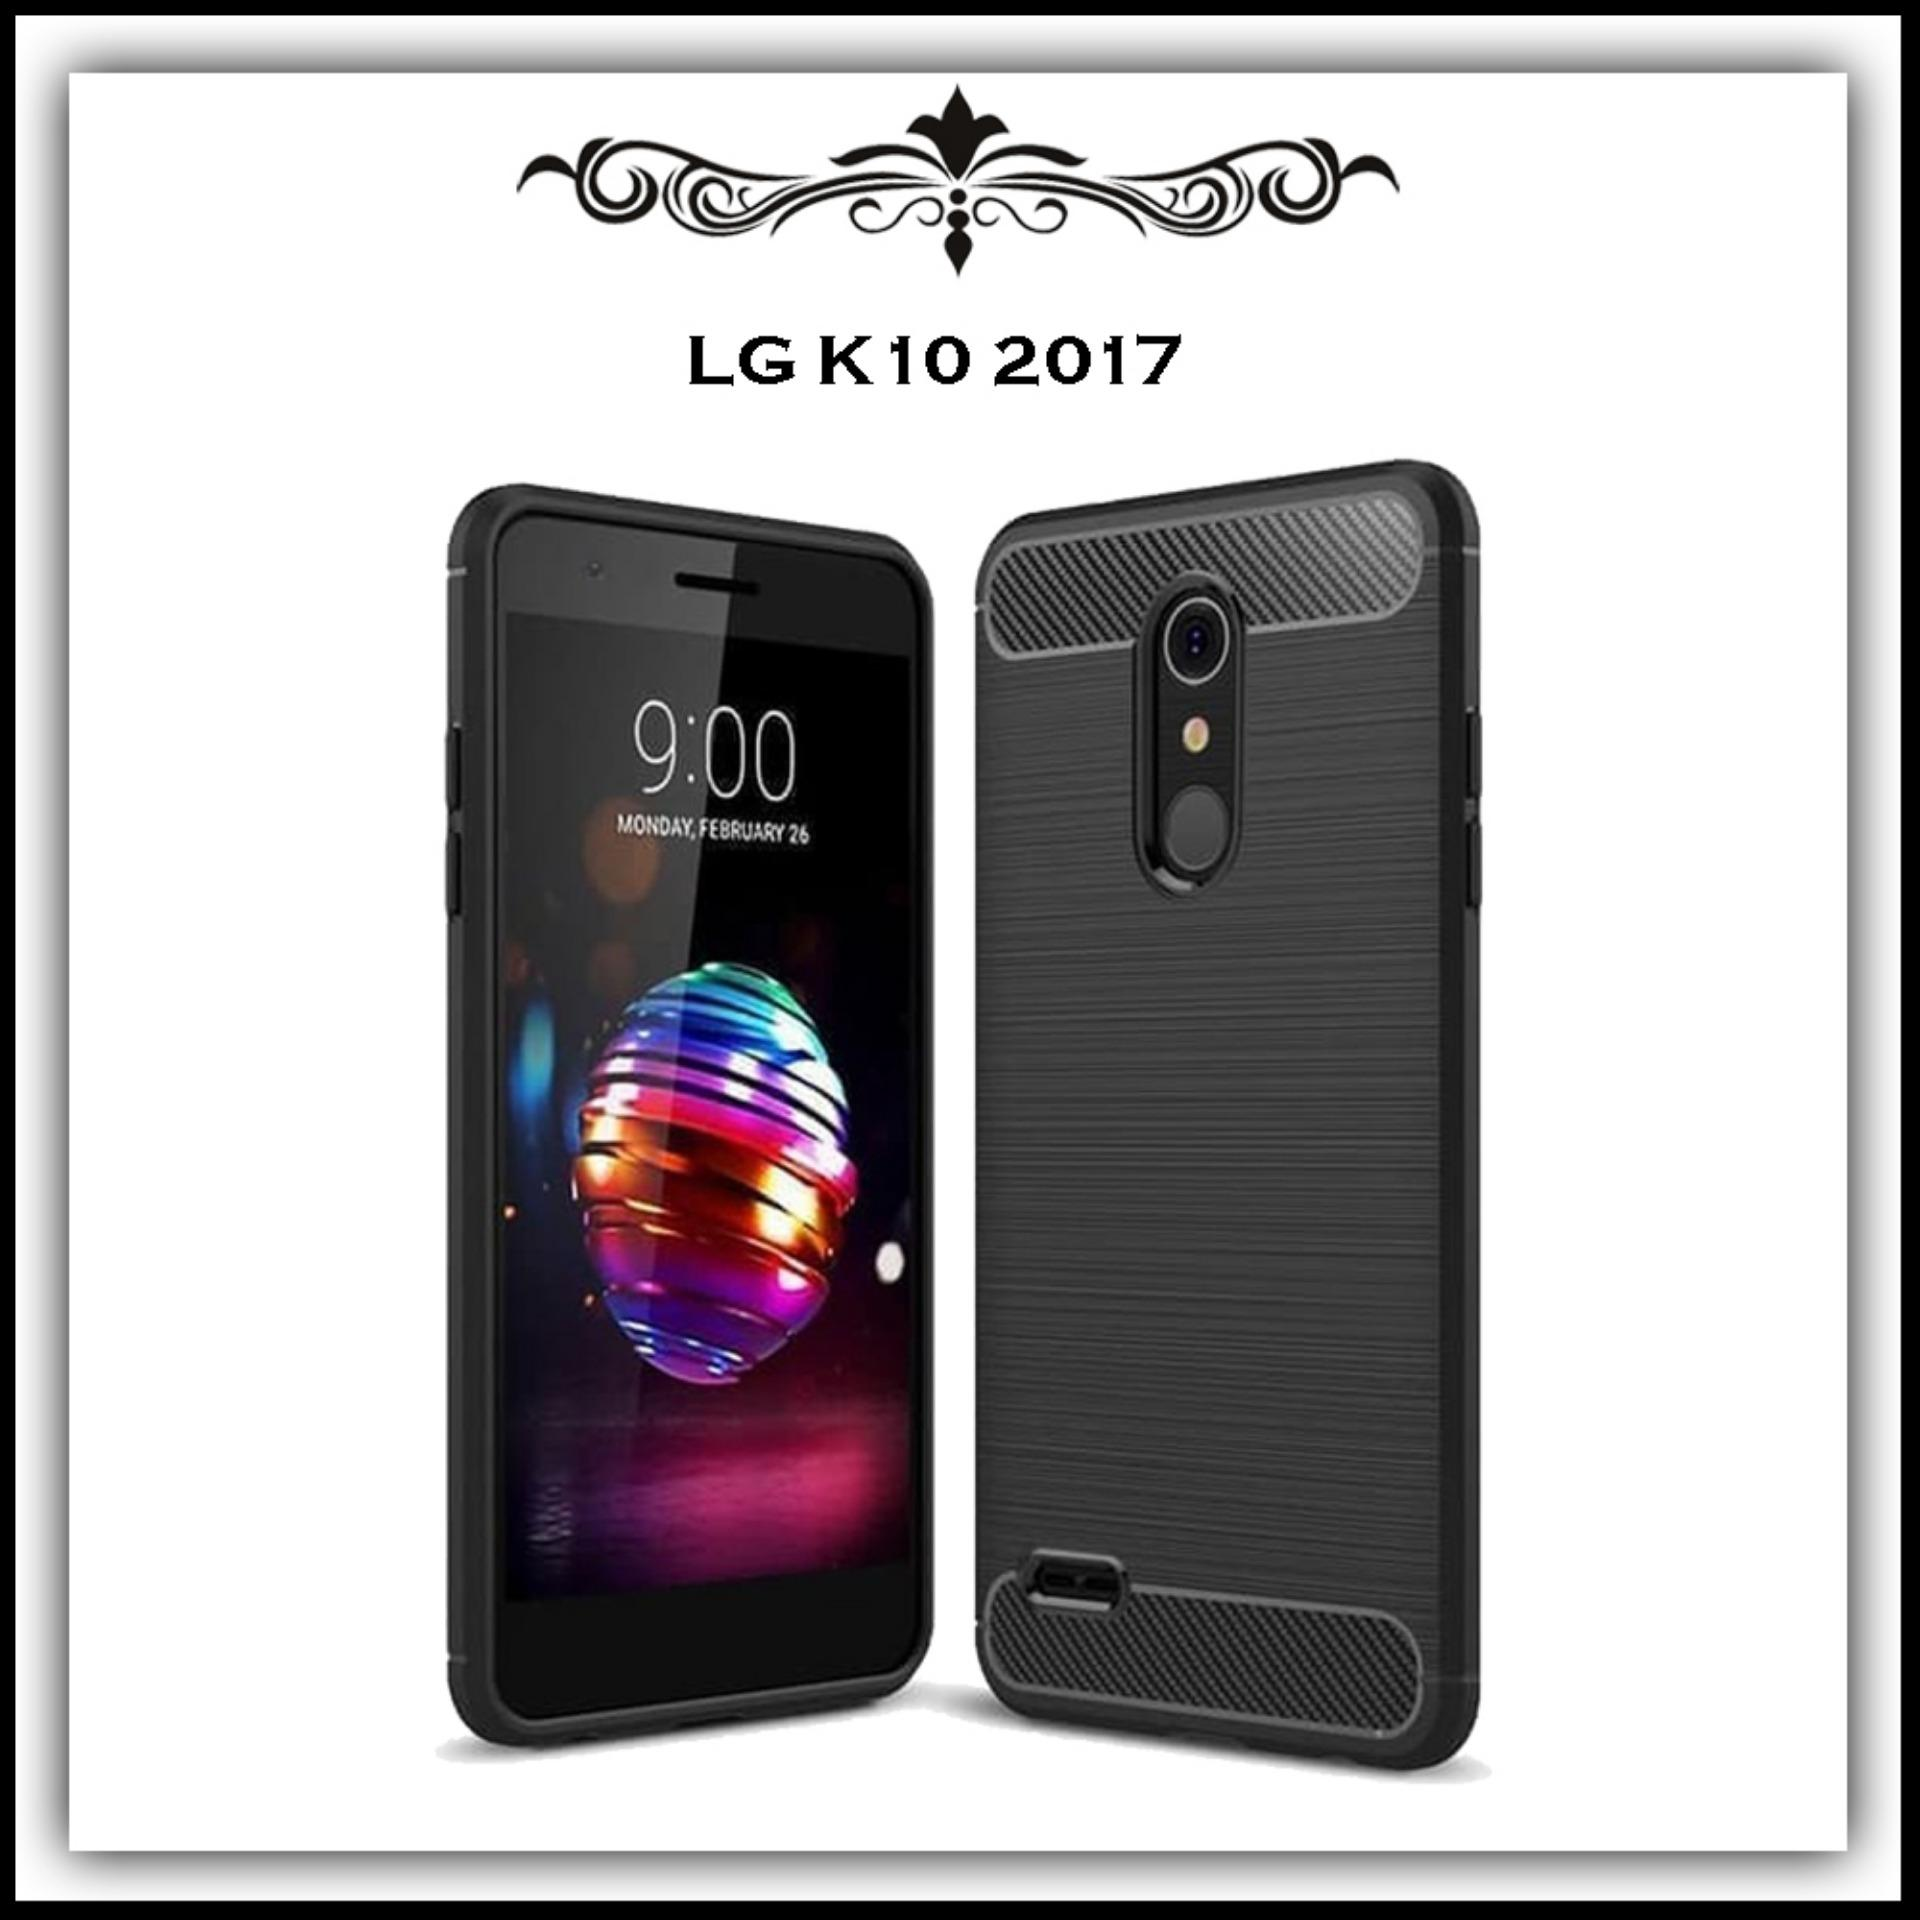 Mushroom Case Ipaky Carbon Fiber Shockproof Hybrid Elegant Case for LG K10  2017 2a06b2388d